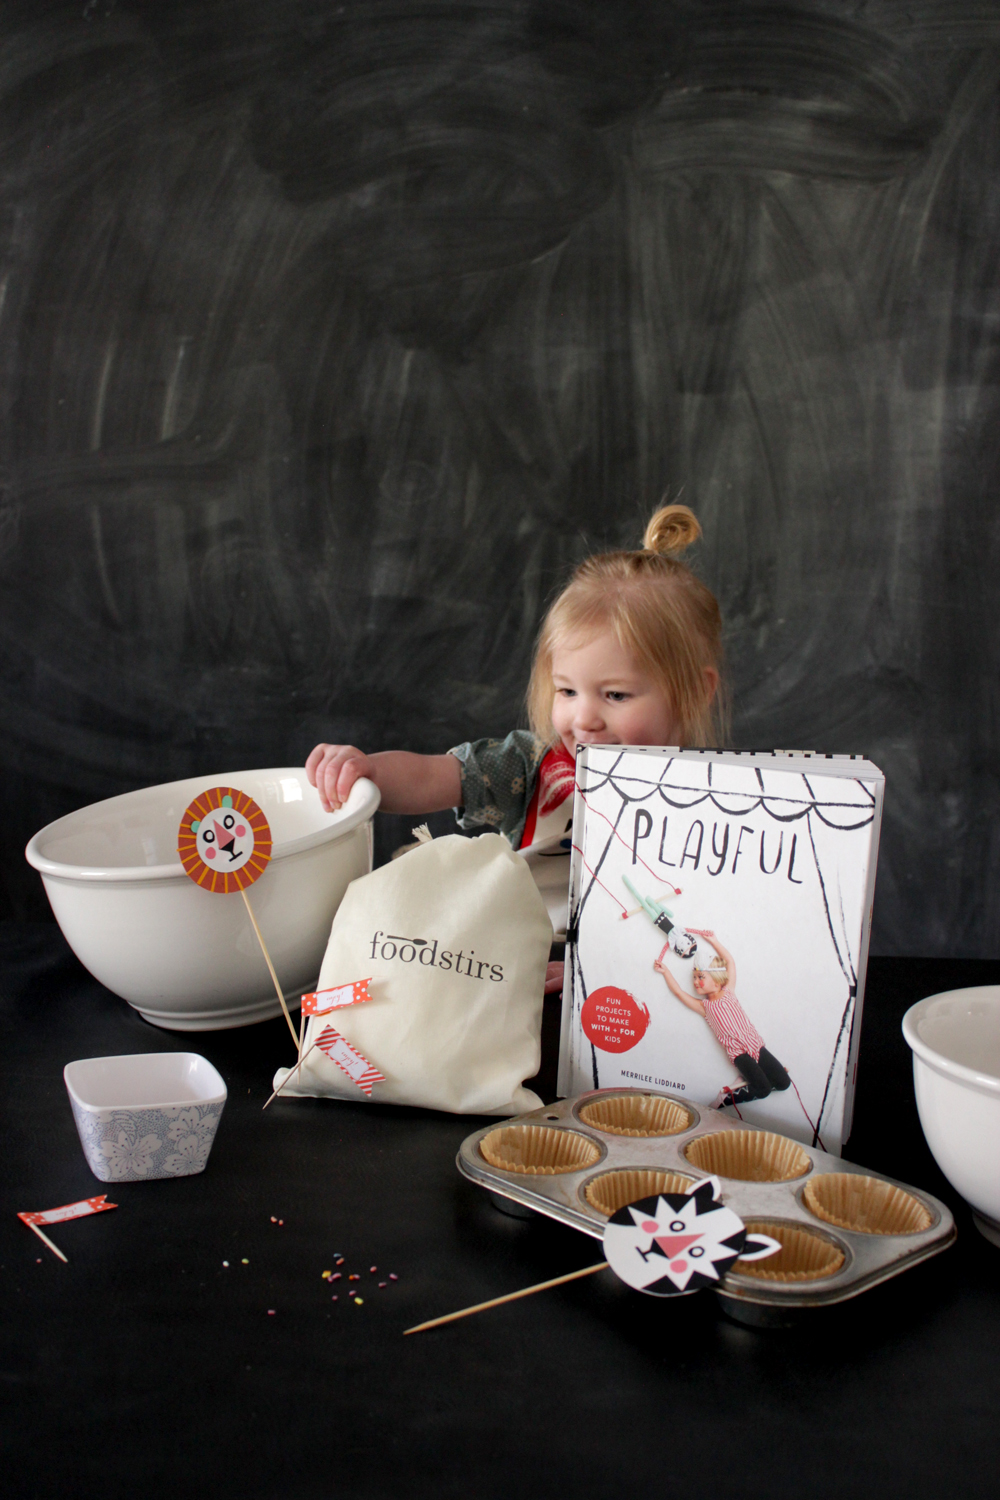 Foodstirs + Playful giveaway